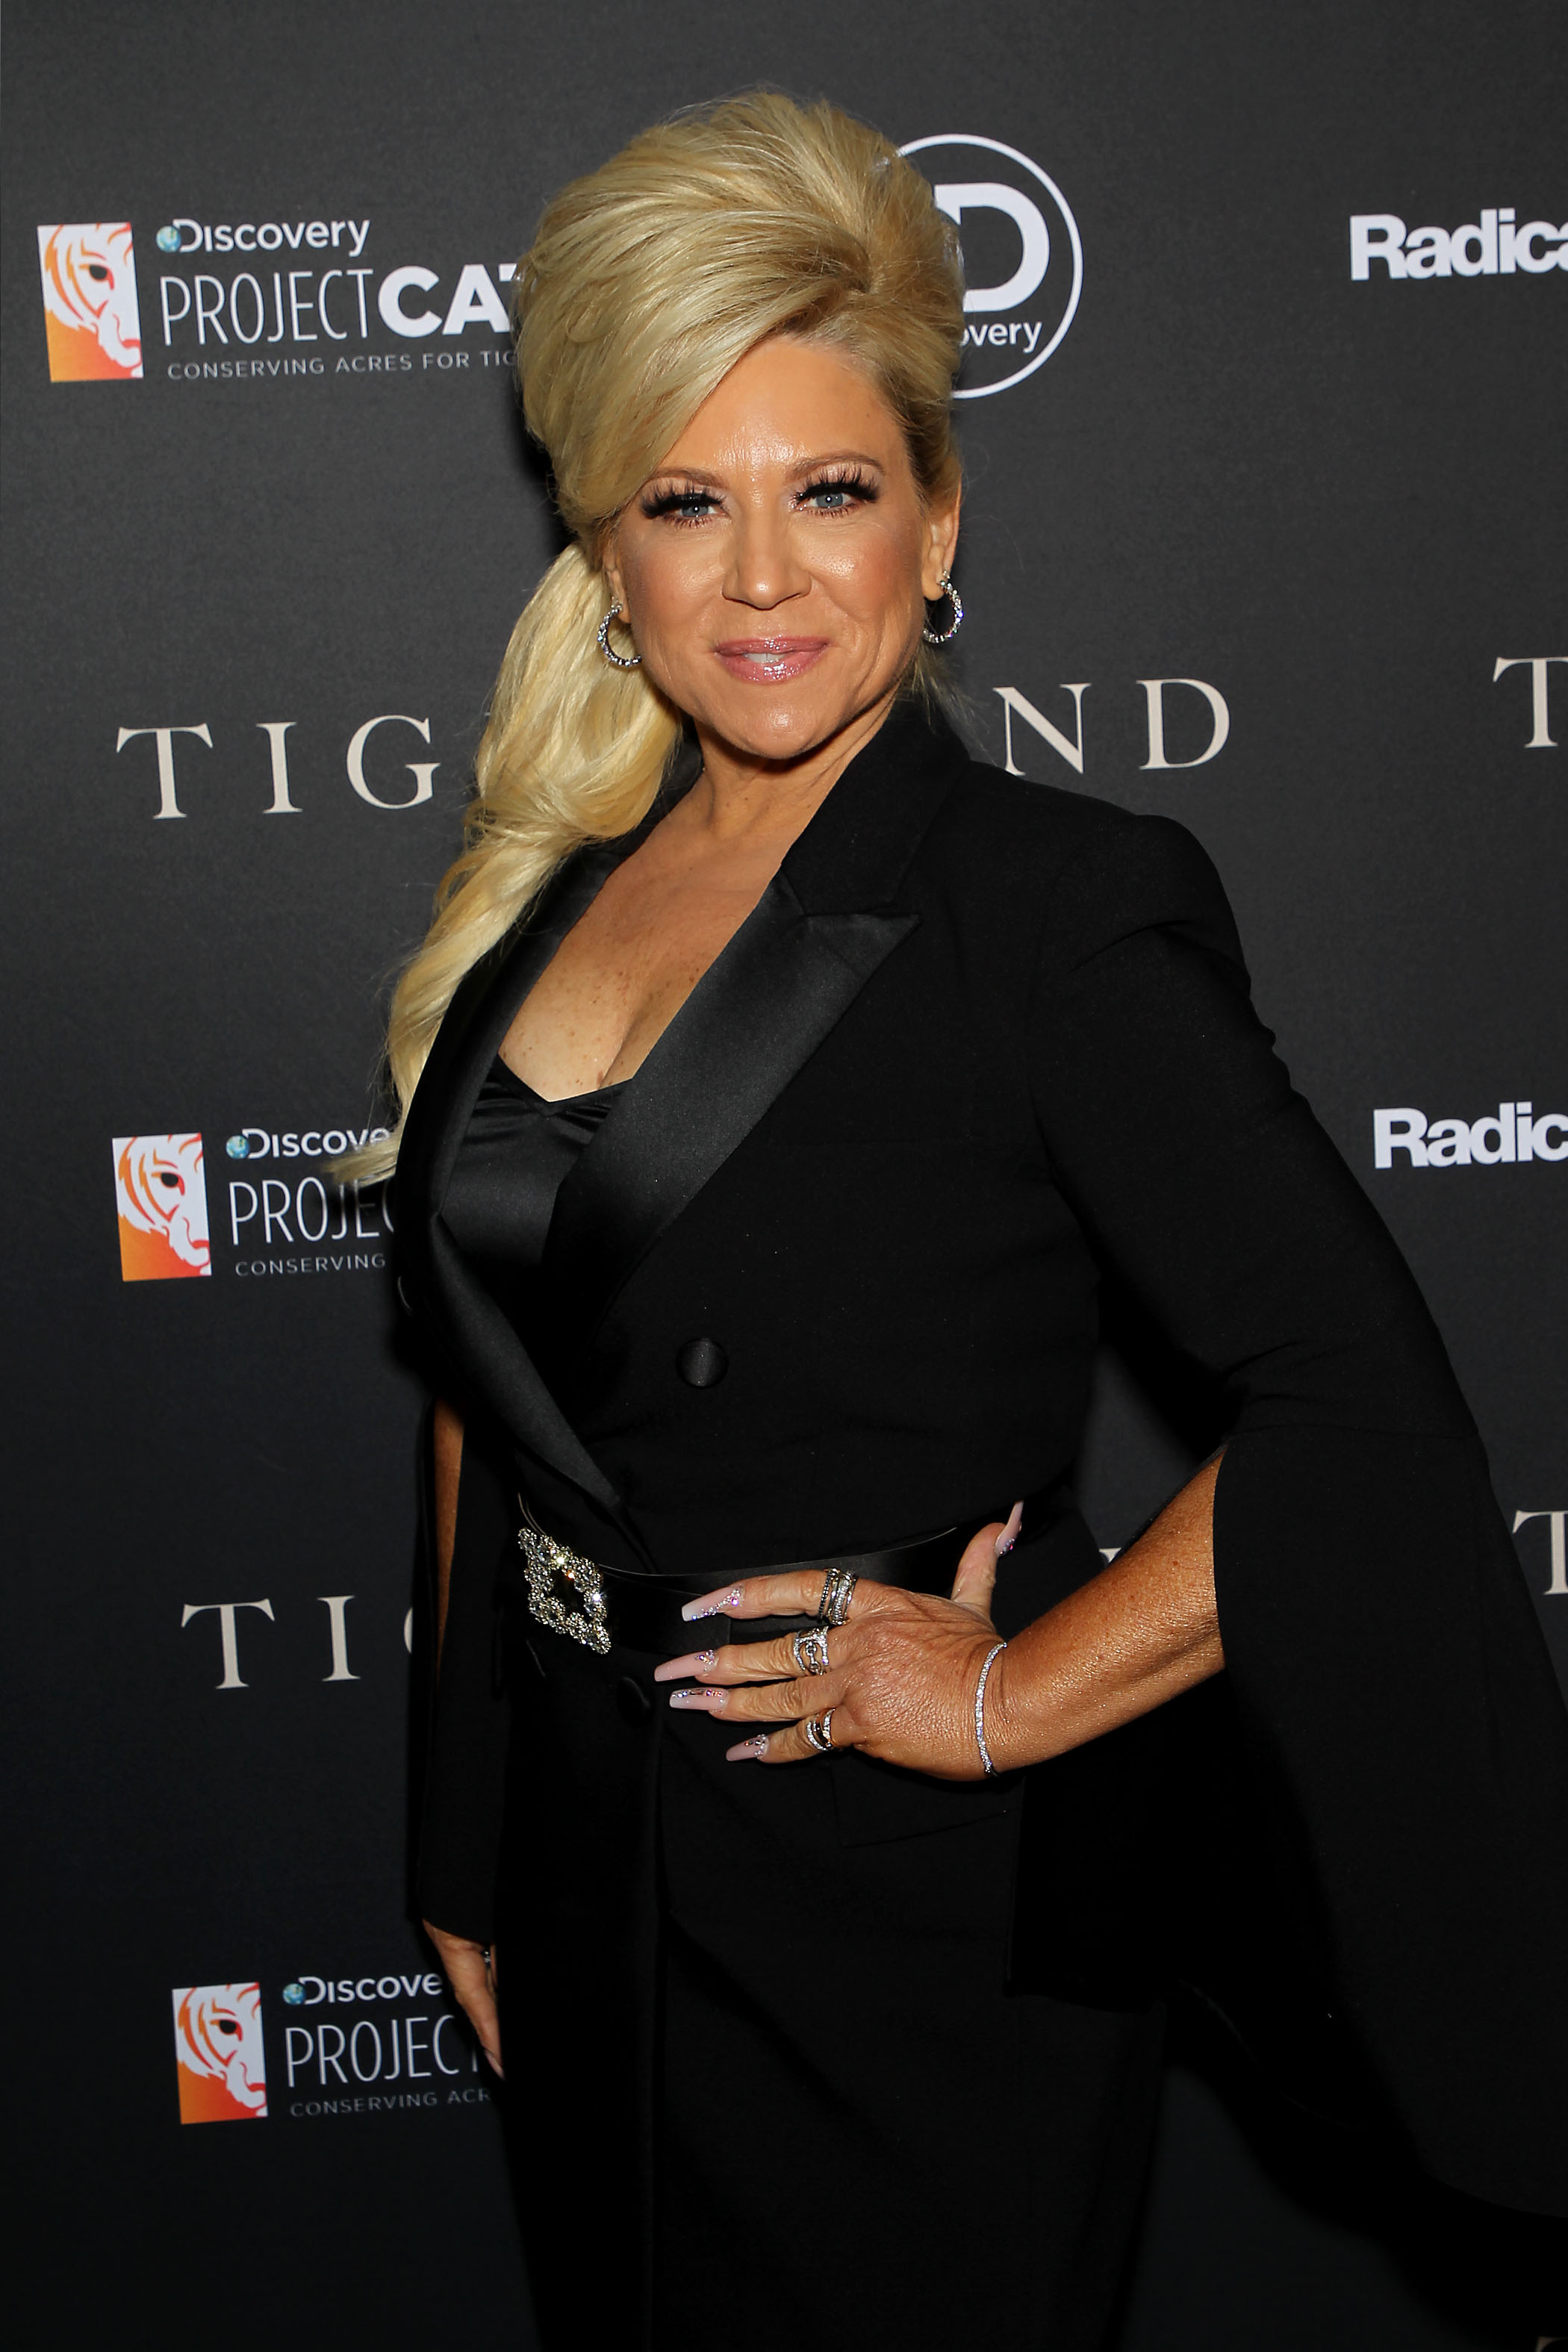 Long Island Medium New Season 2020.How Much Does It Cost To Get A Reading From The Long Island